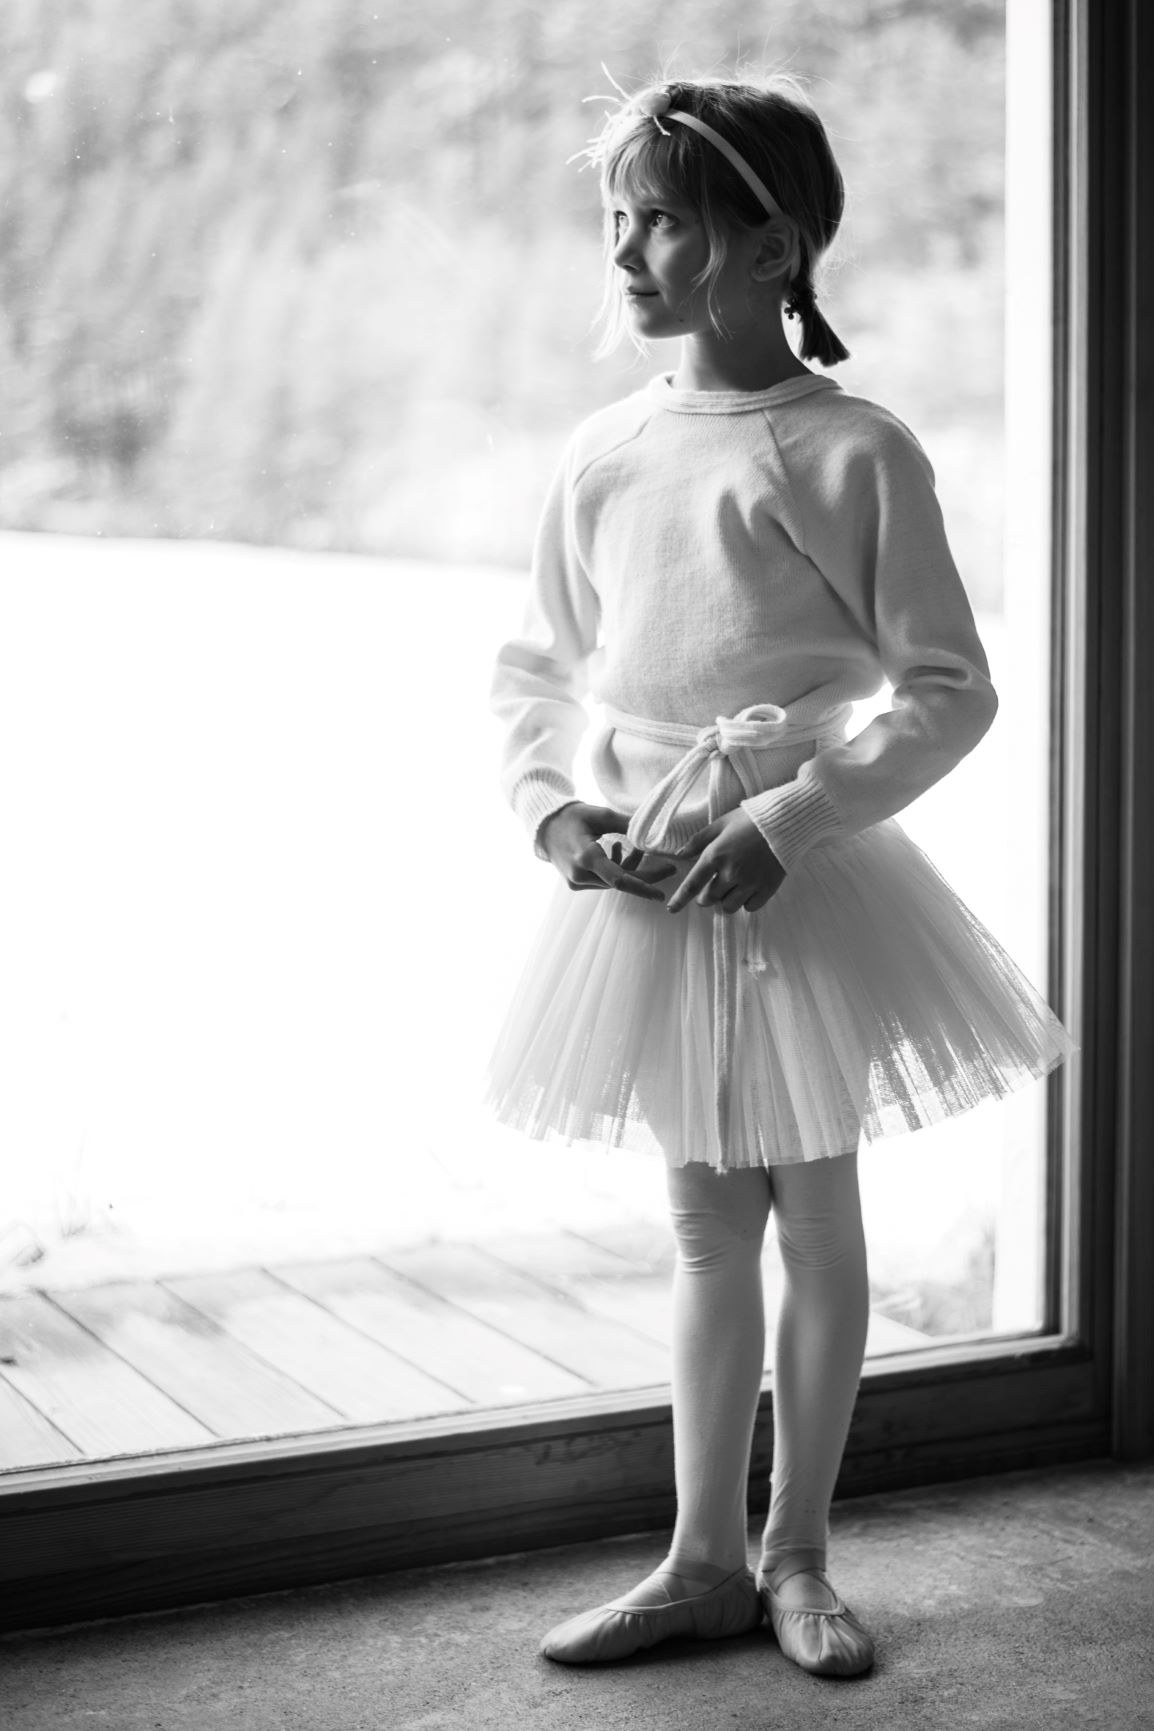 Ballerina Contemplating - Photo © Daniela Brugger